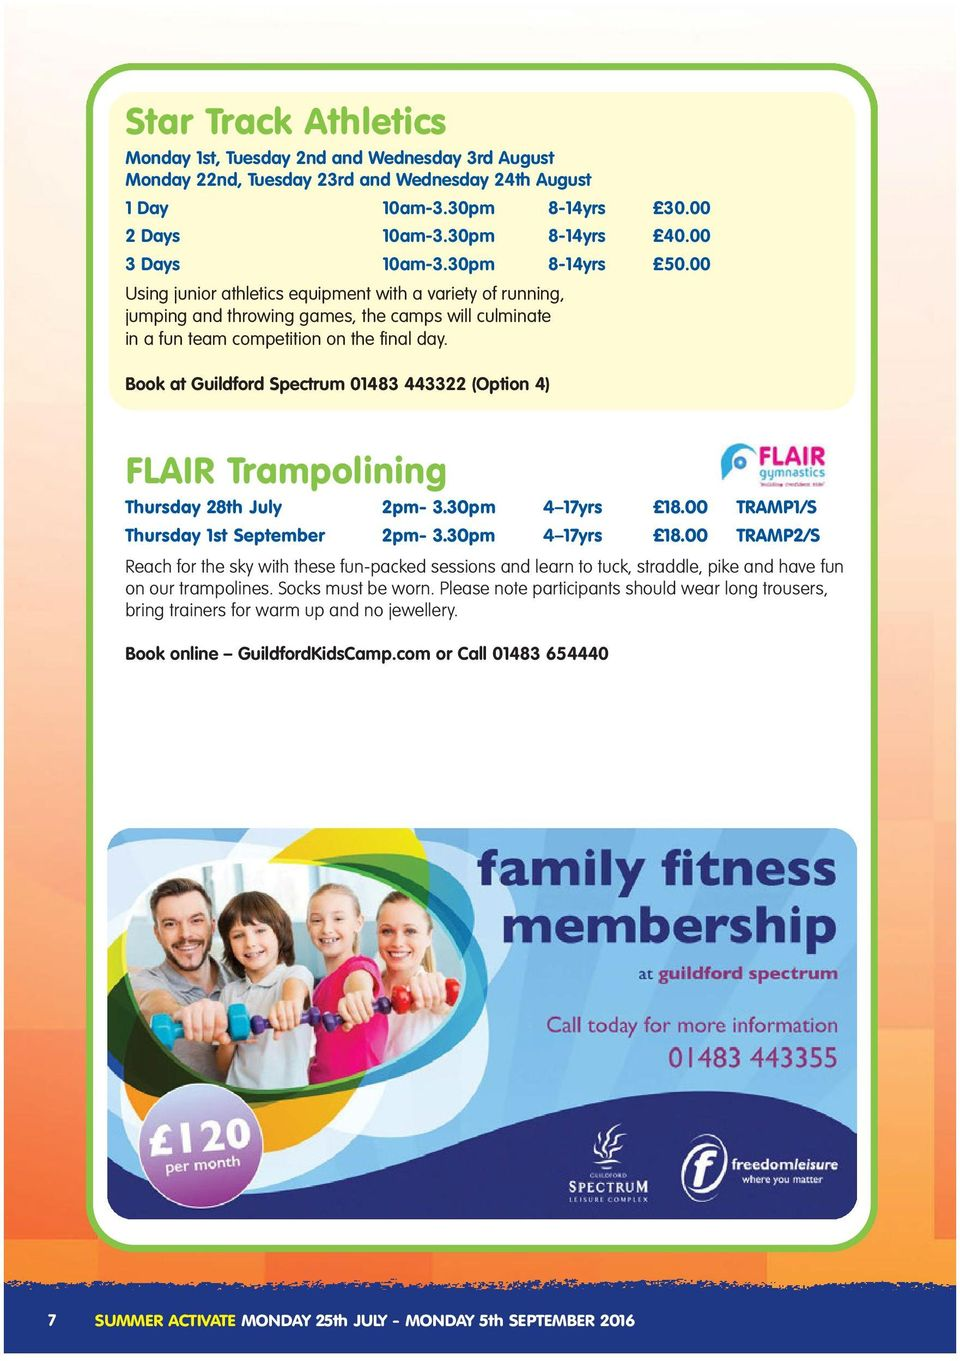 Book at Guildford Spectrum 01483 443322 (Option 4) FLAIR Trampolining Thursday 28th July 2pm- 3.30pm 4 17yrs 18.